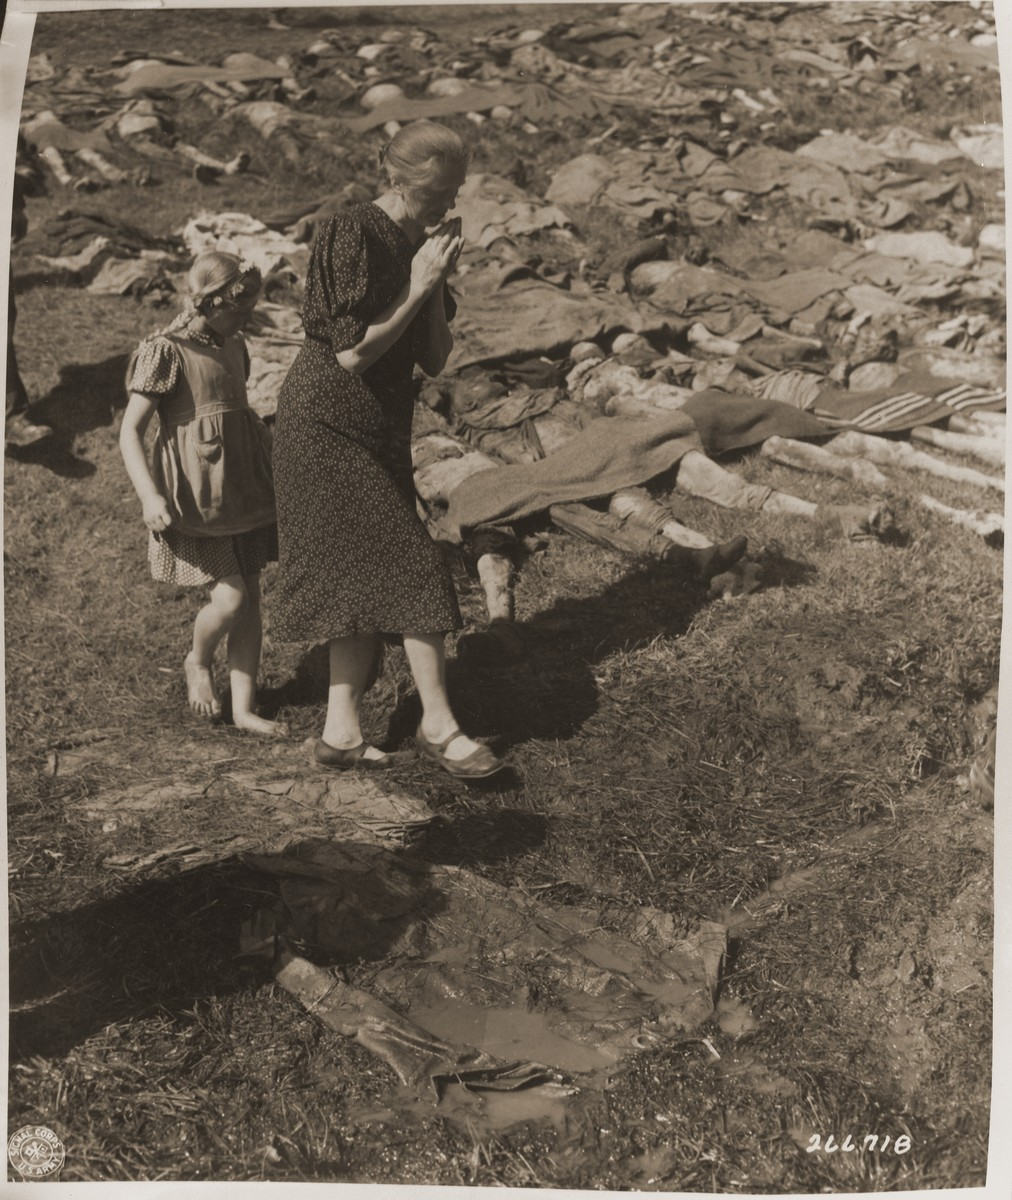 A German woman and a bare-footed young girl from Nammering are forced to walk among the corpses of prisoners exhumed from a mass grave near the town.